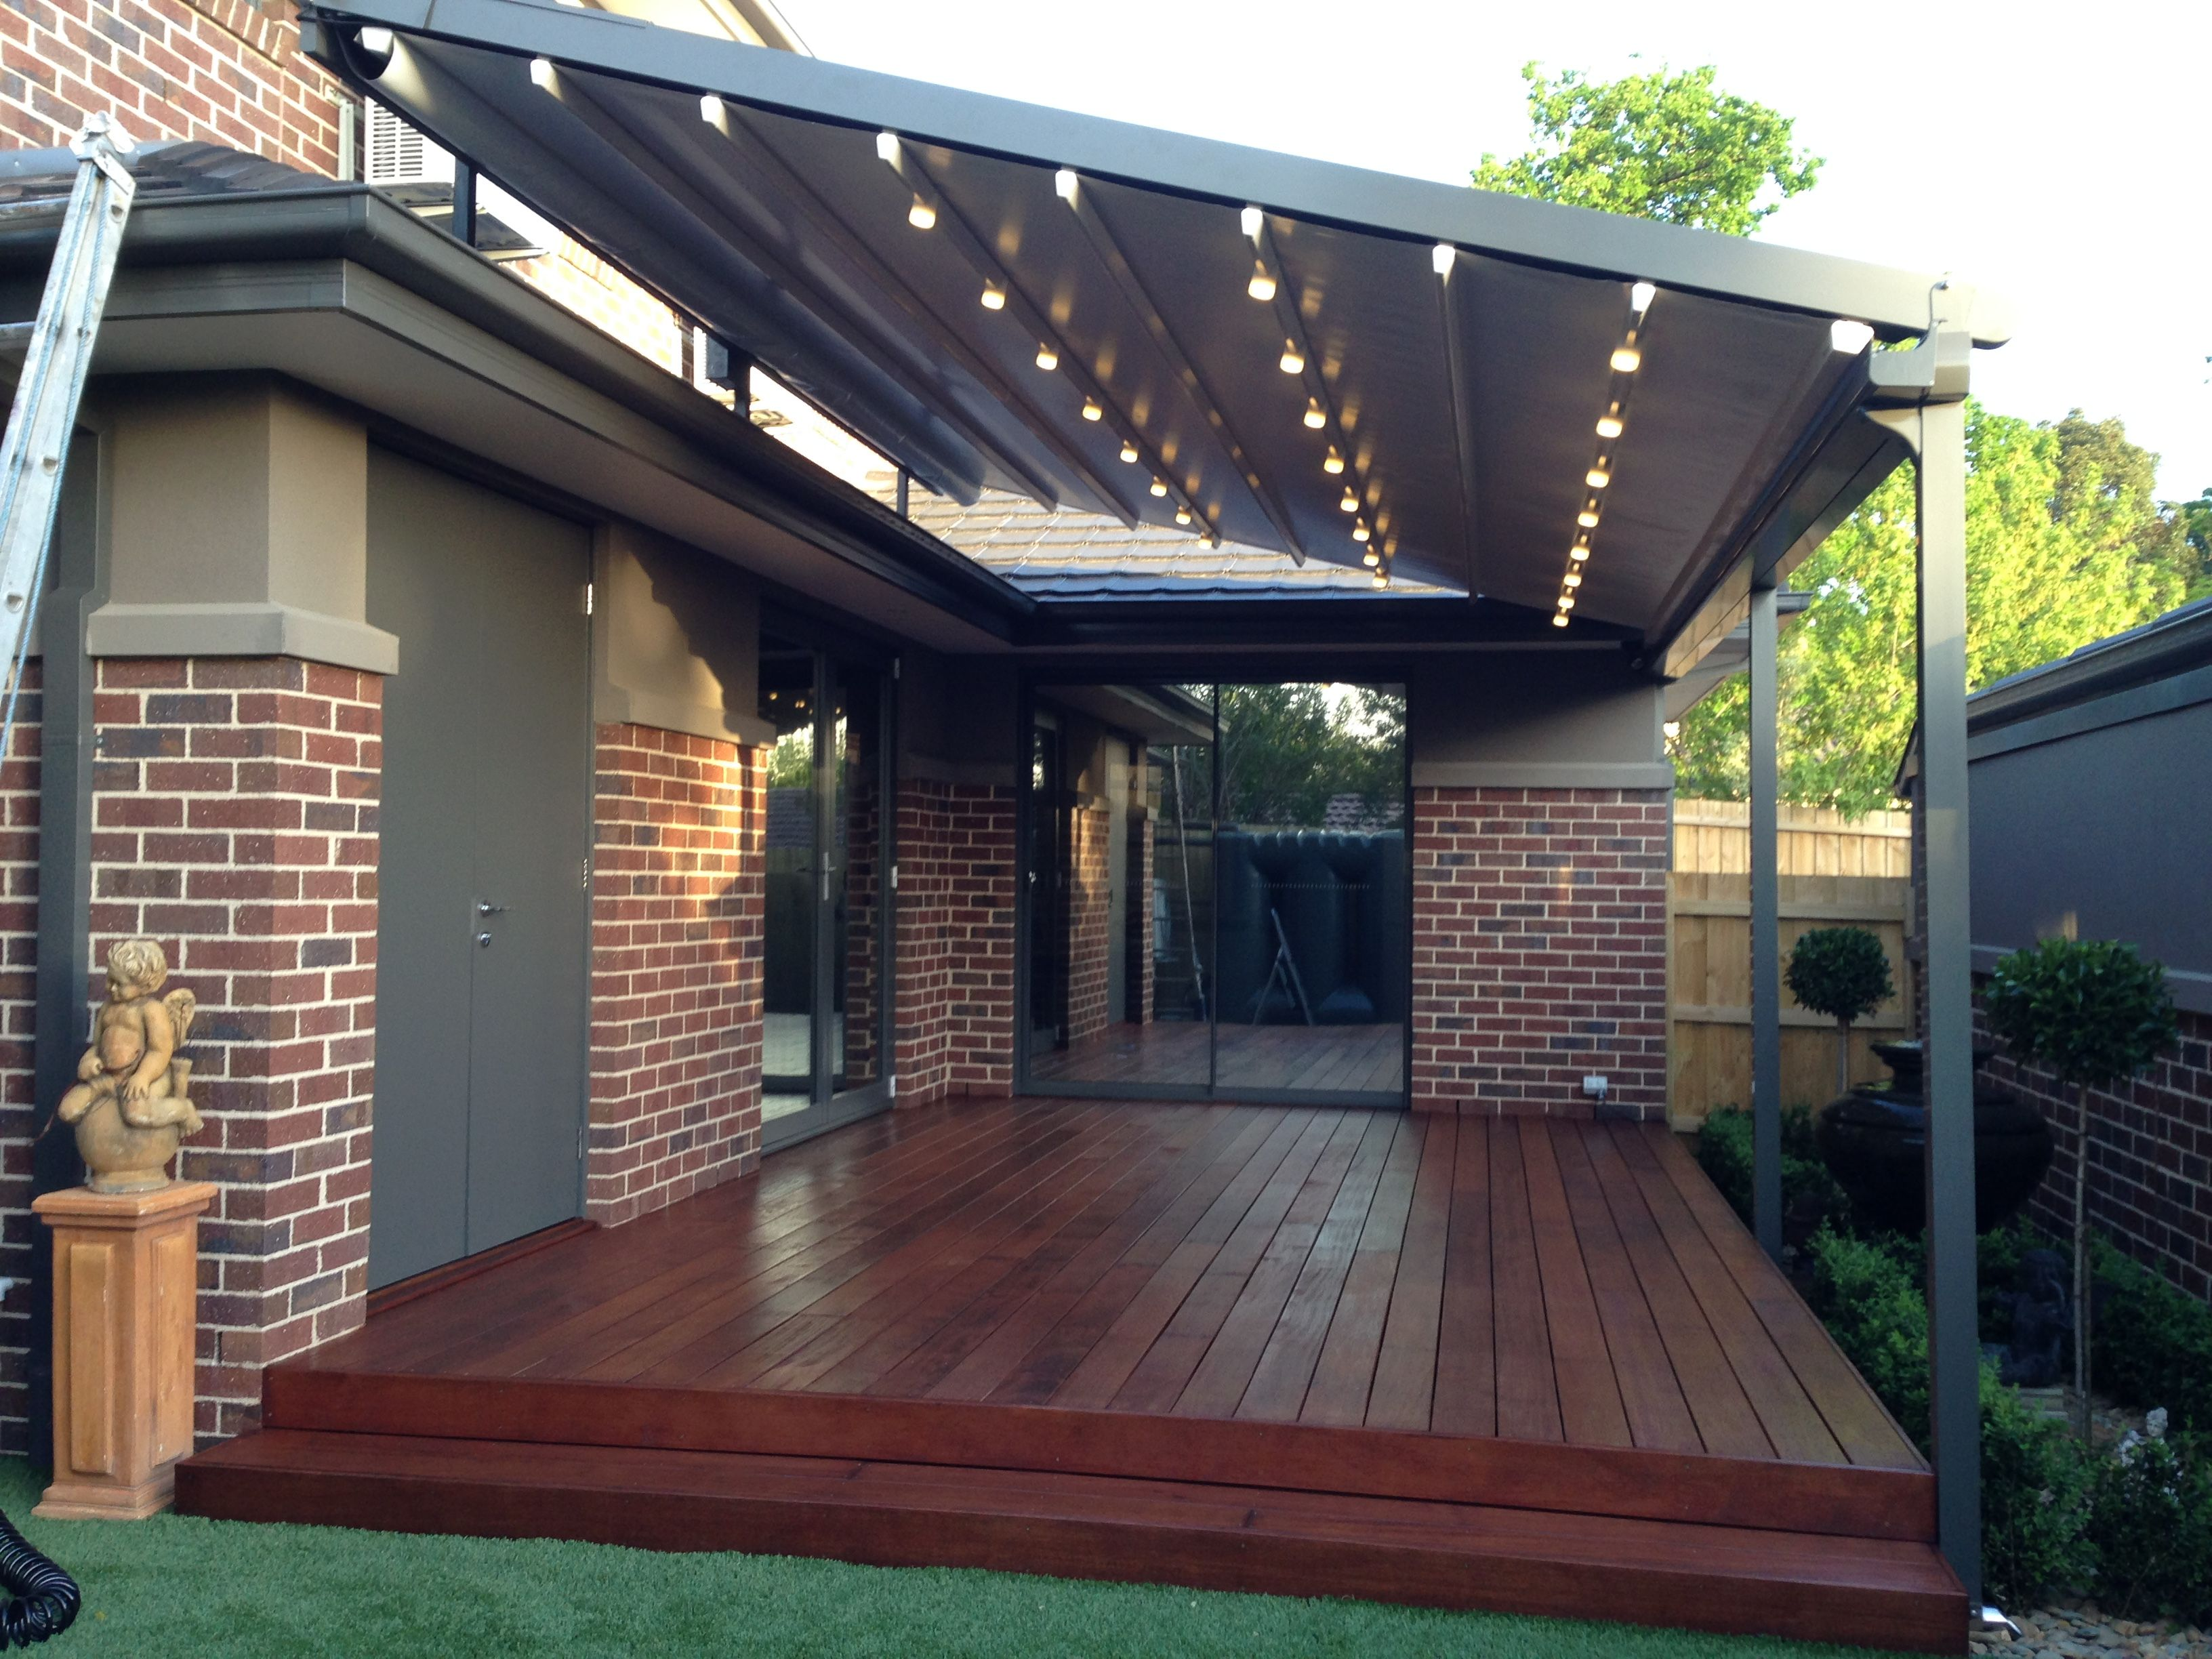 deck free how build redwood ideas designs backyard patio cover outdoor baton retractable roof on images concept about covers photos stand incredible clear diy austin kits alone elitewood standing wood california awning aluminum amazing coverings design to plans rouge sail freestanding